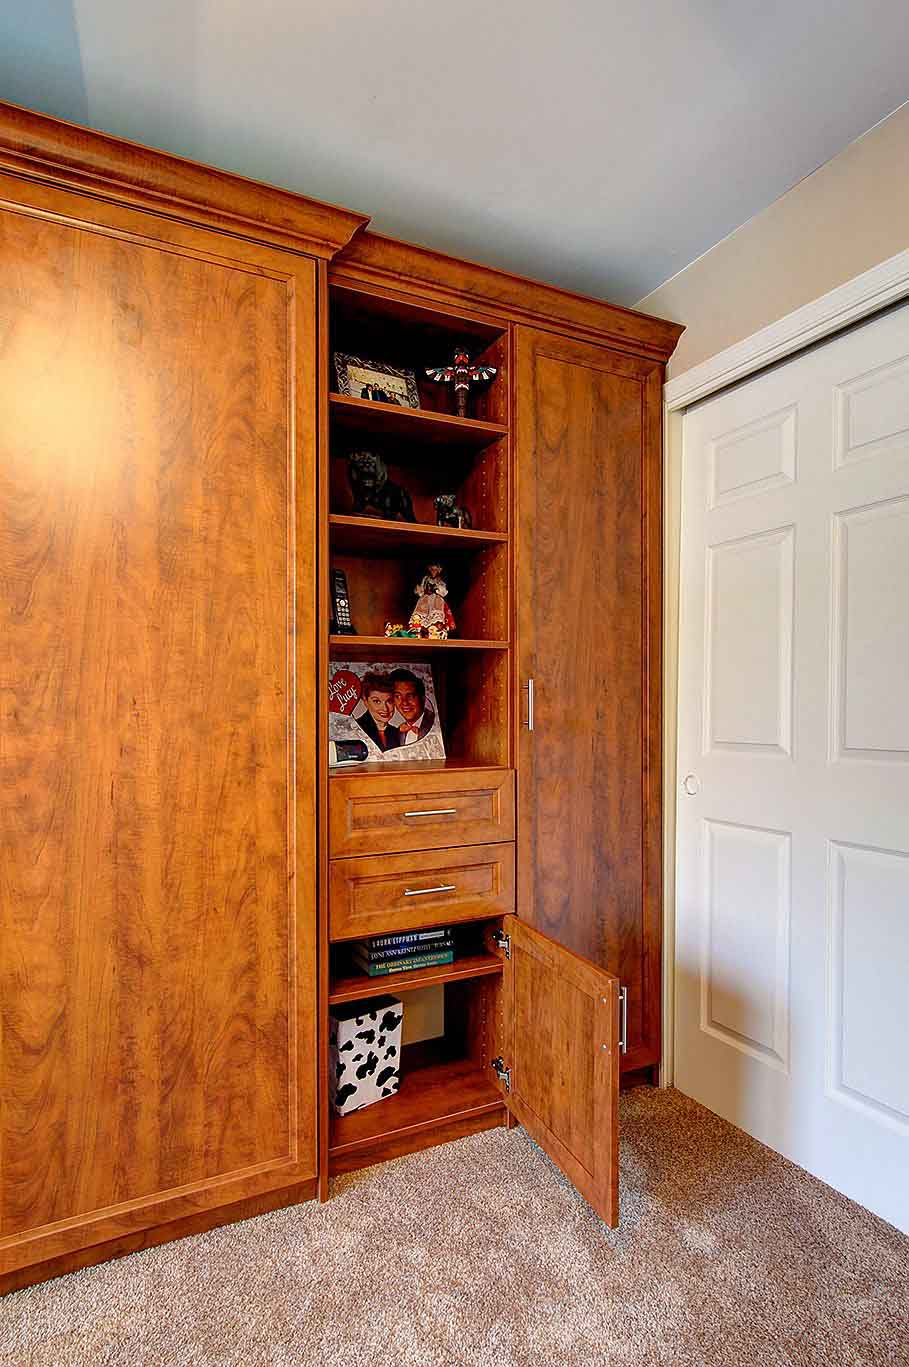 Organized drawer storage in a furniture cabinet next to concealed queen sized Murphy bed